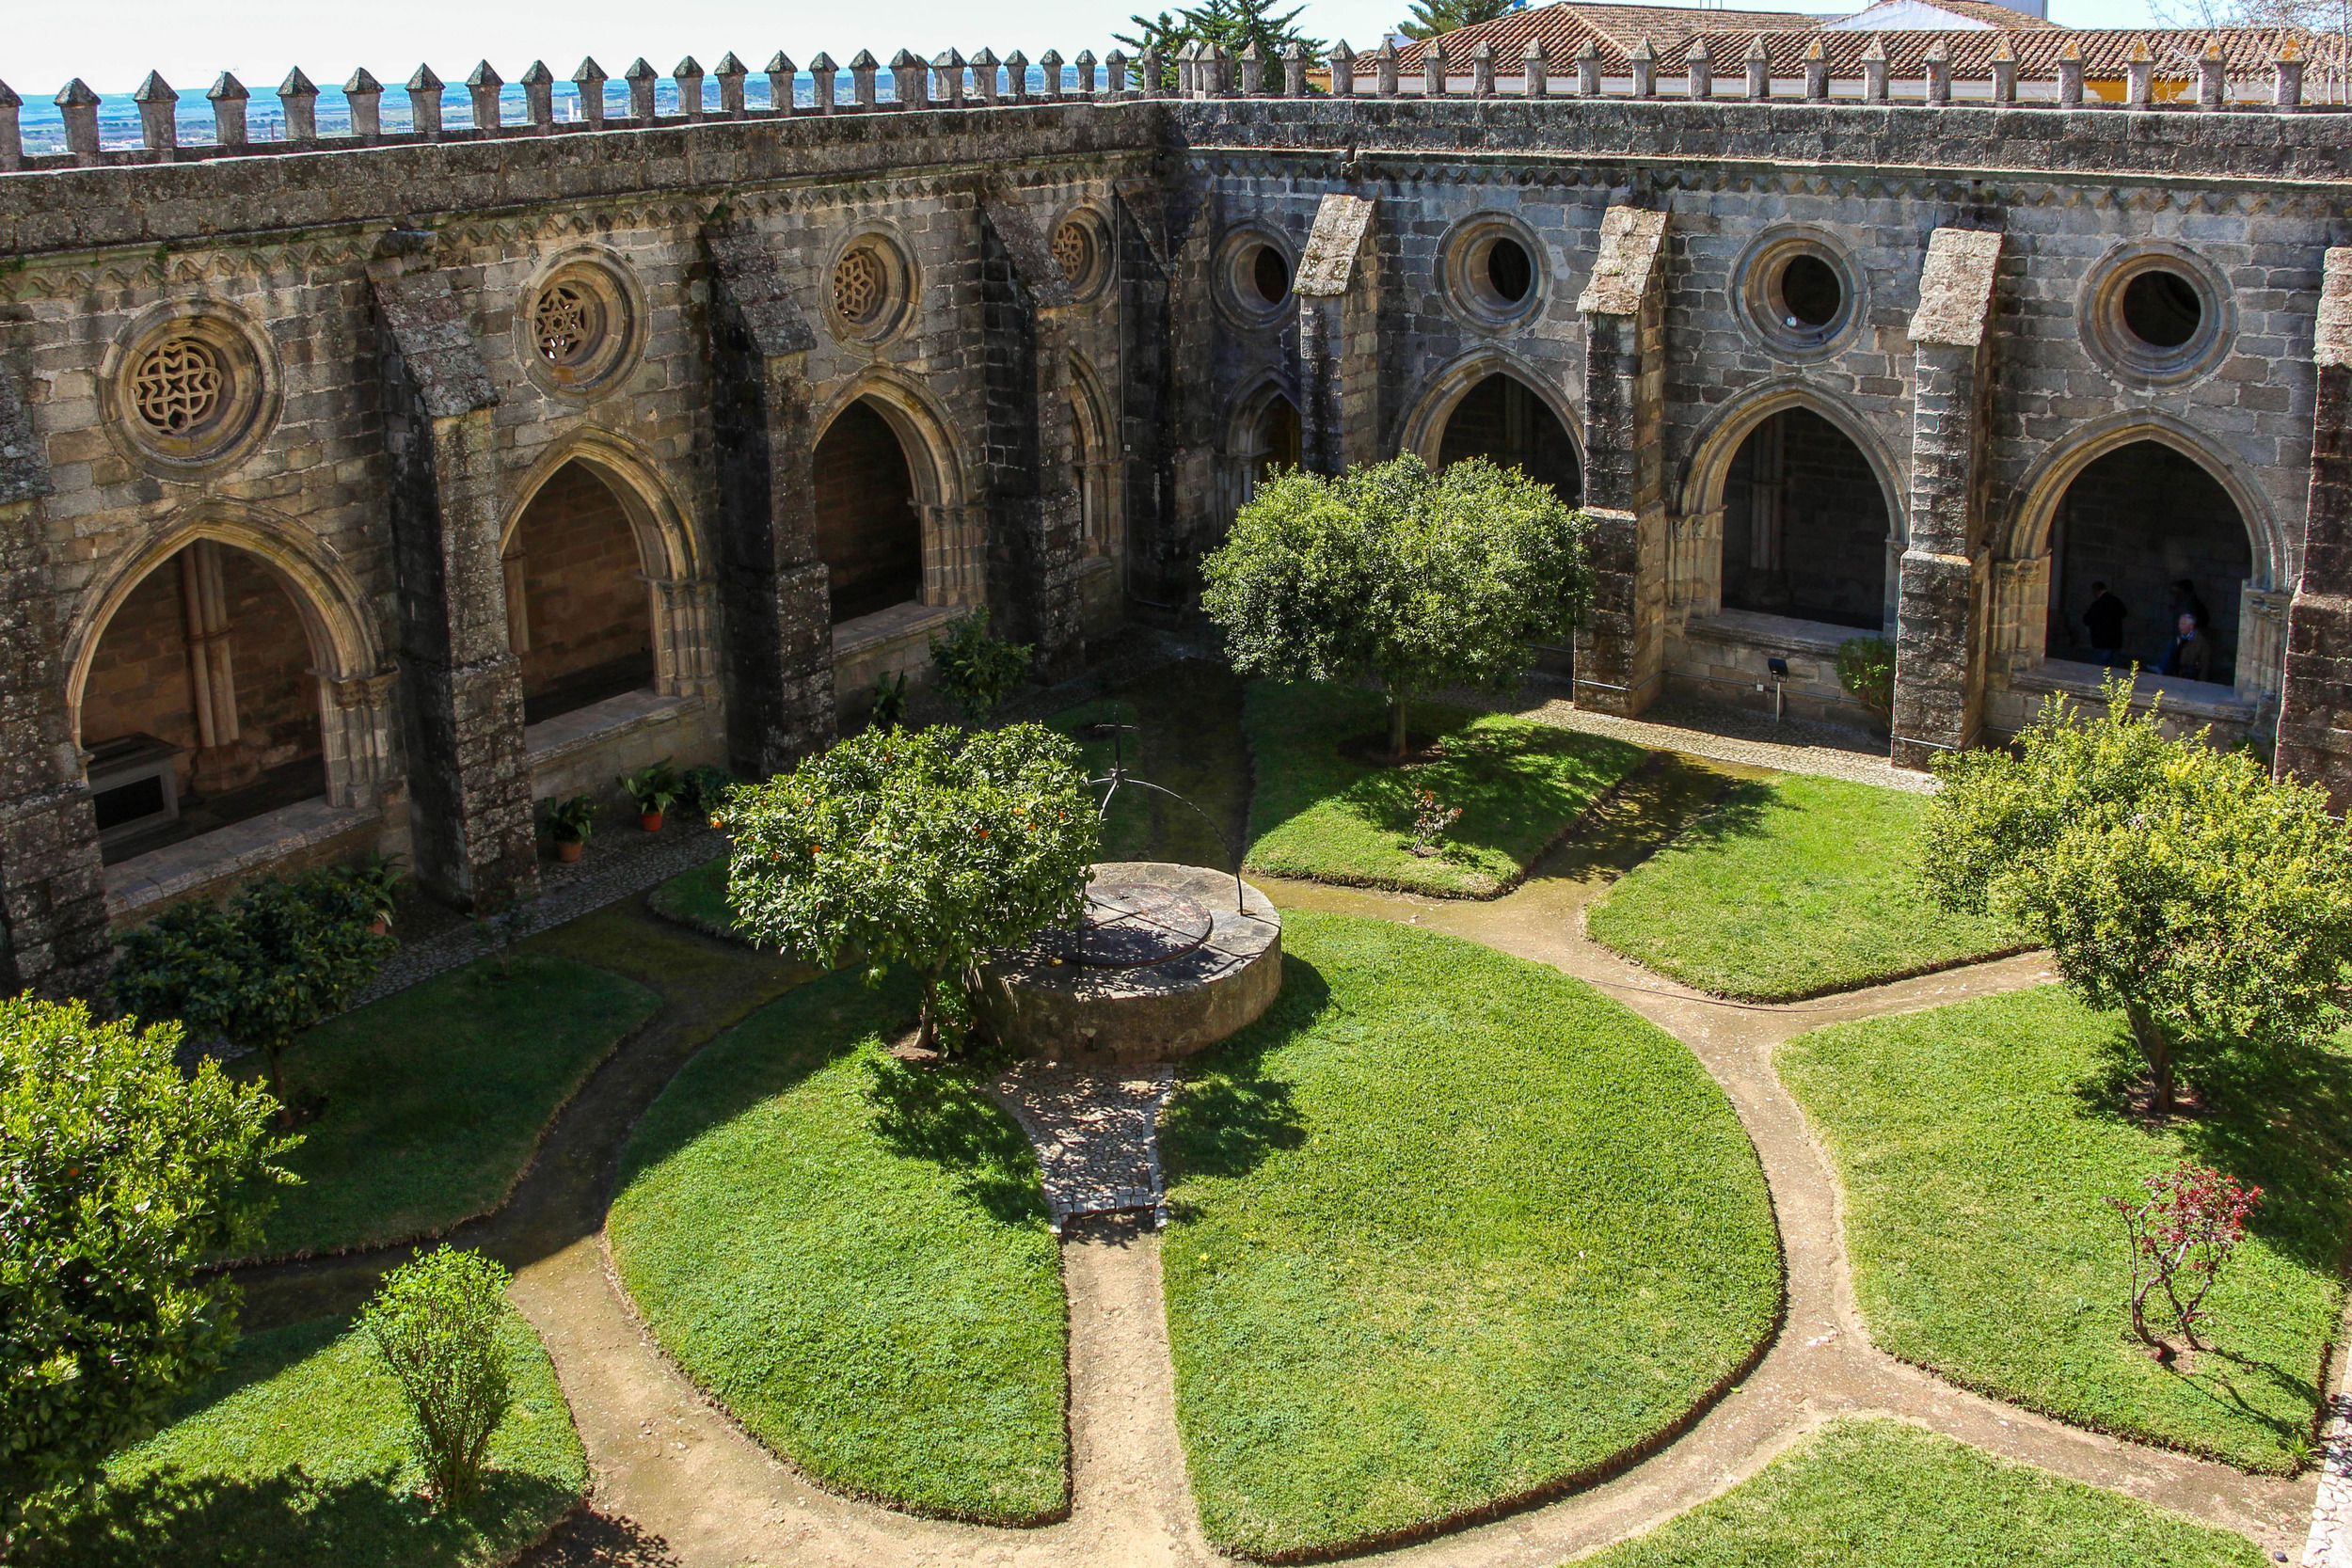 View of the cloister from the cathedral walls